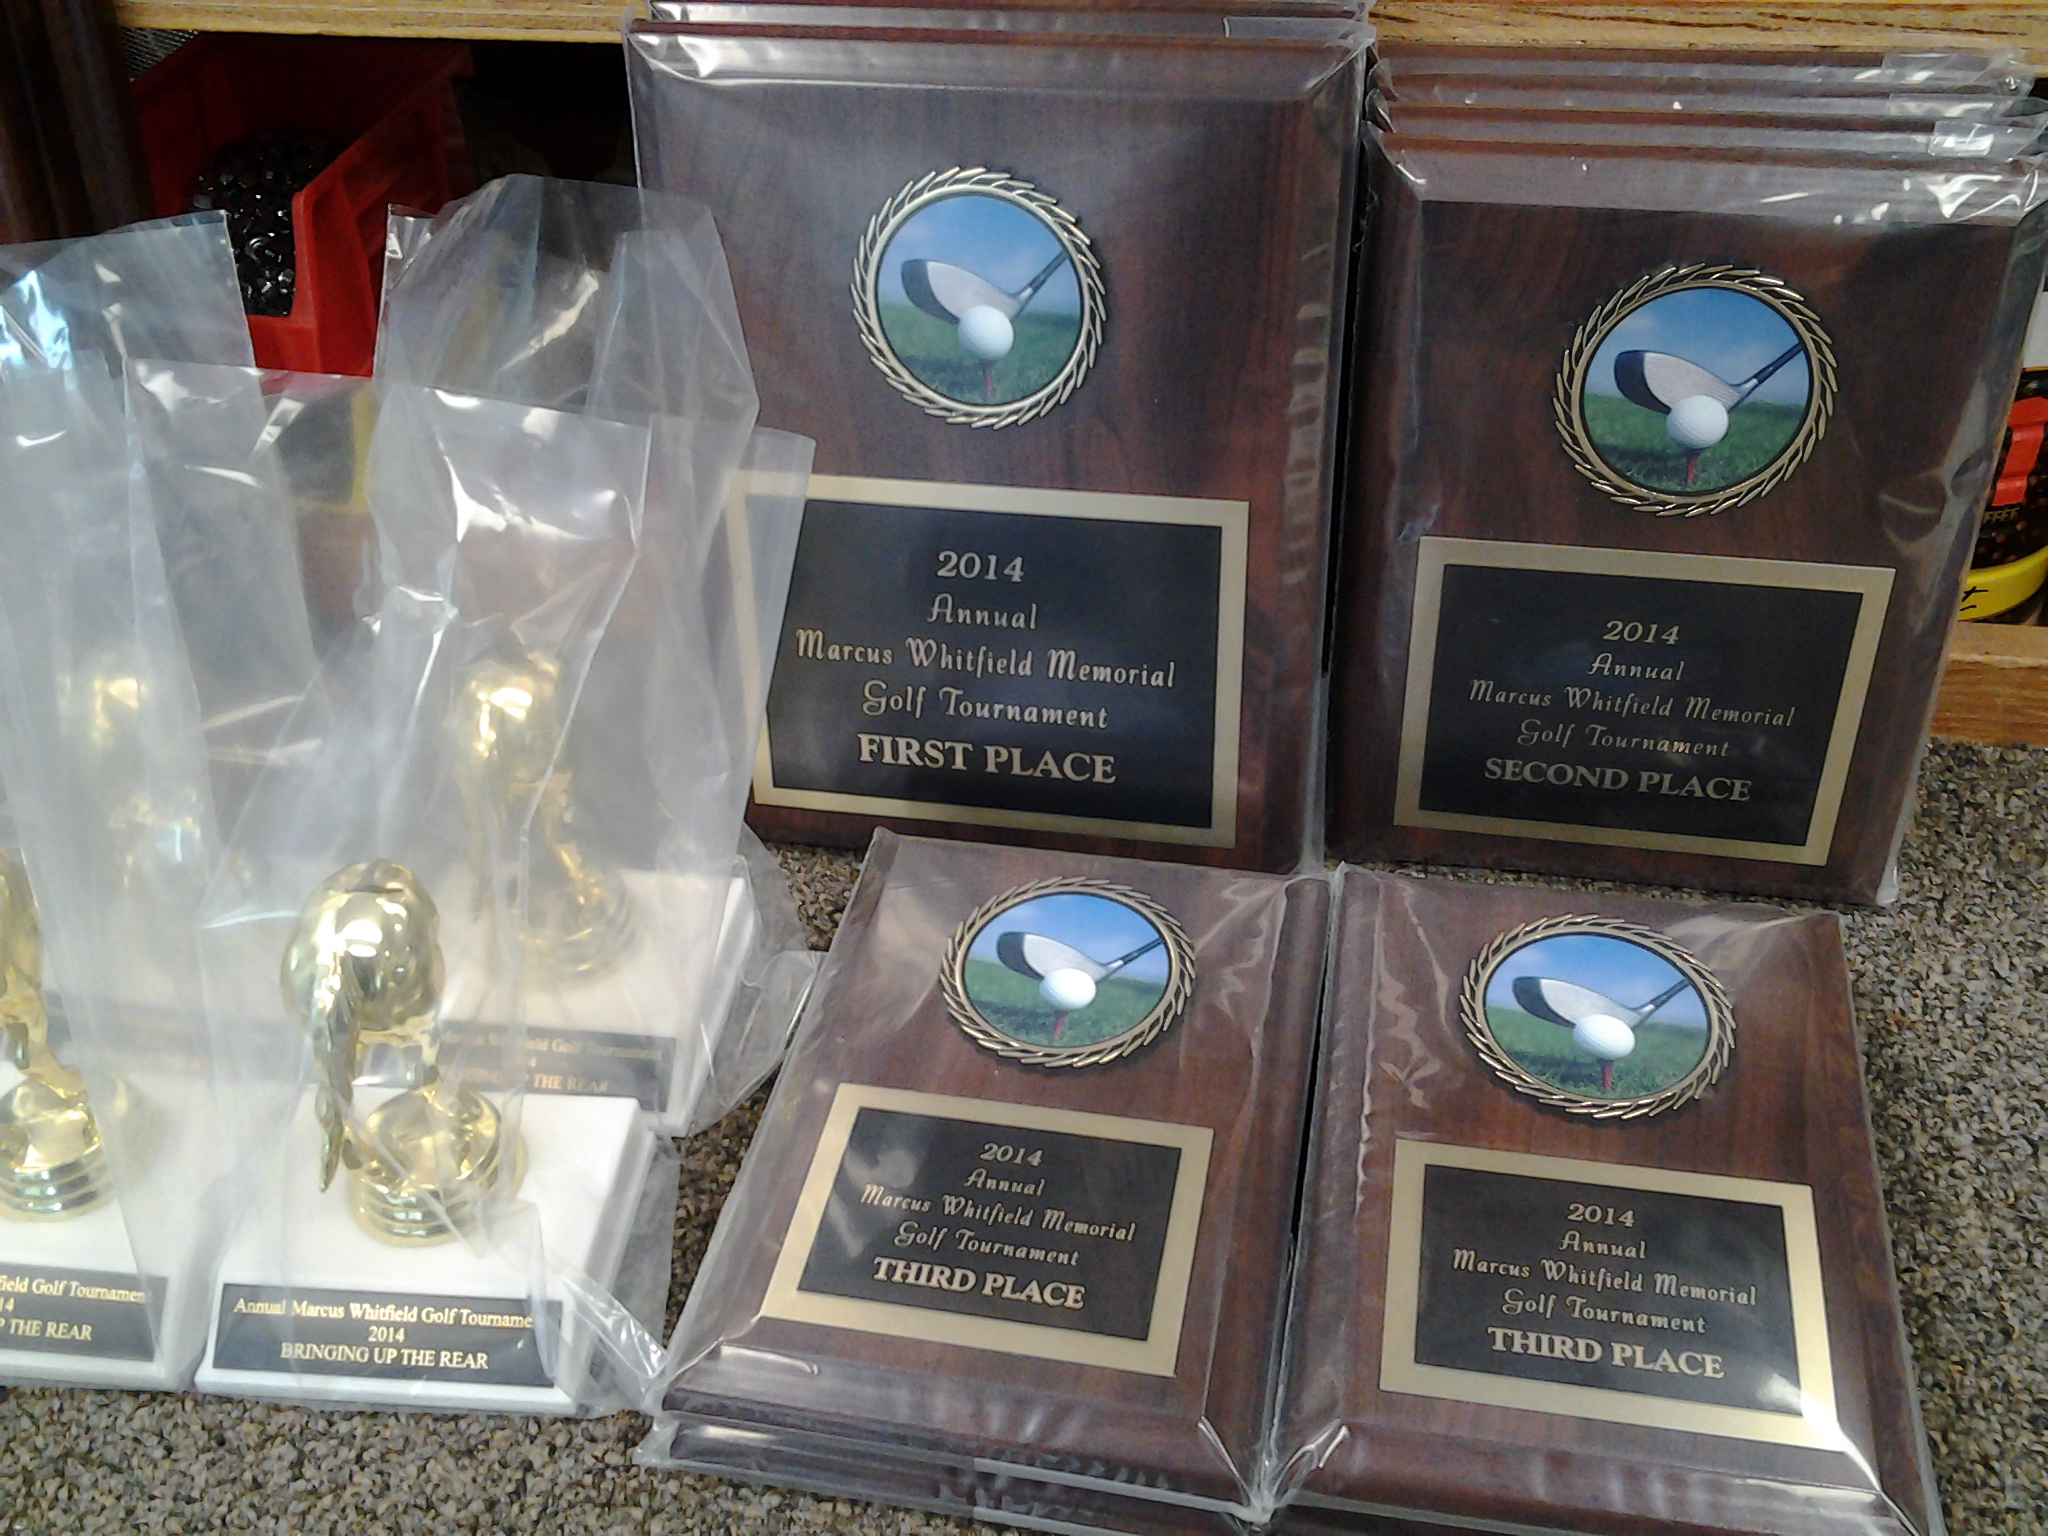 Plaques and Trophies